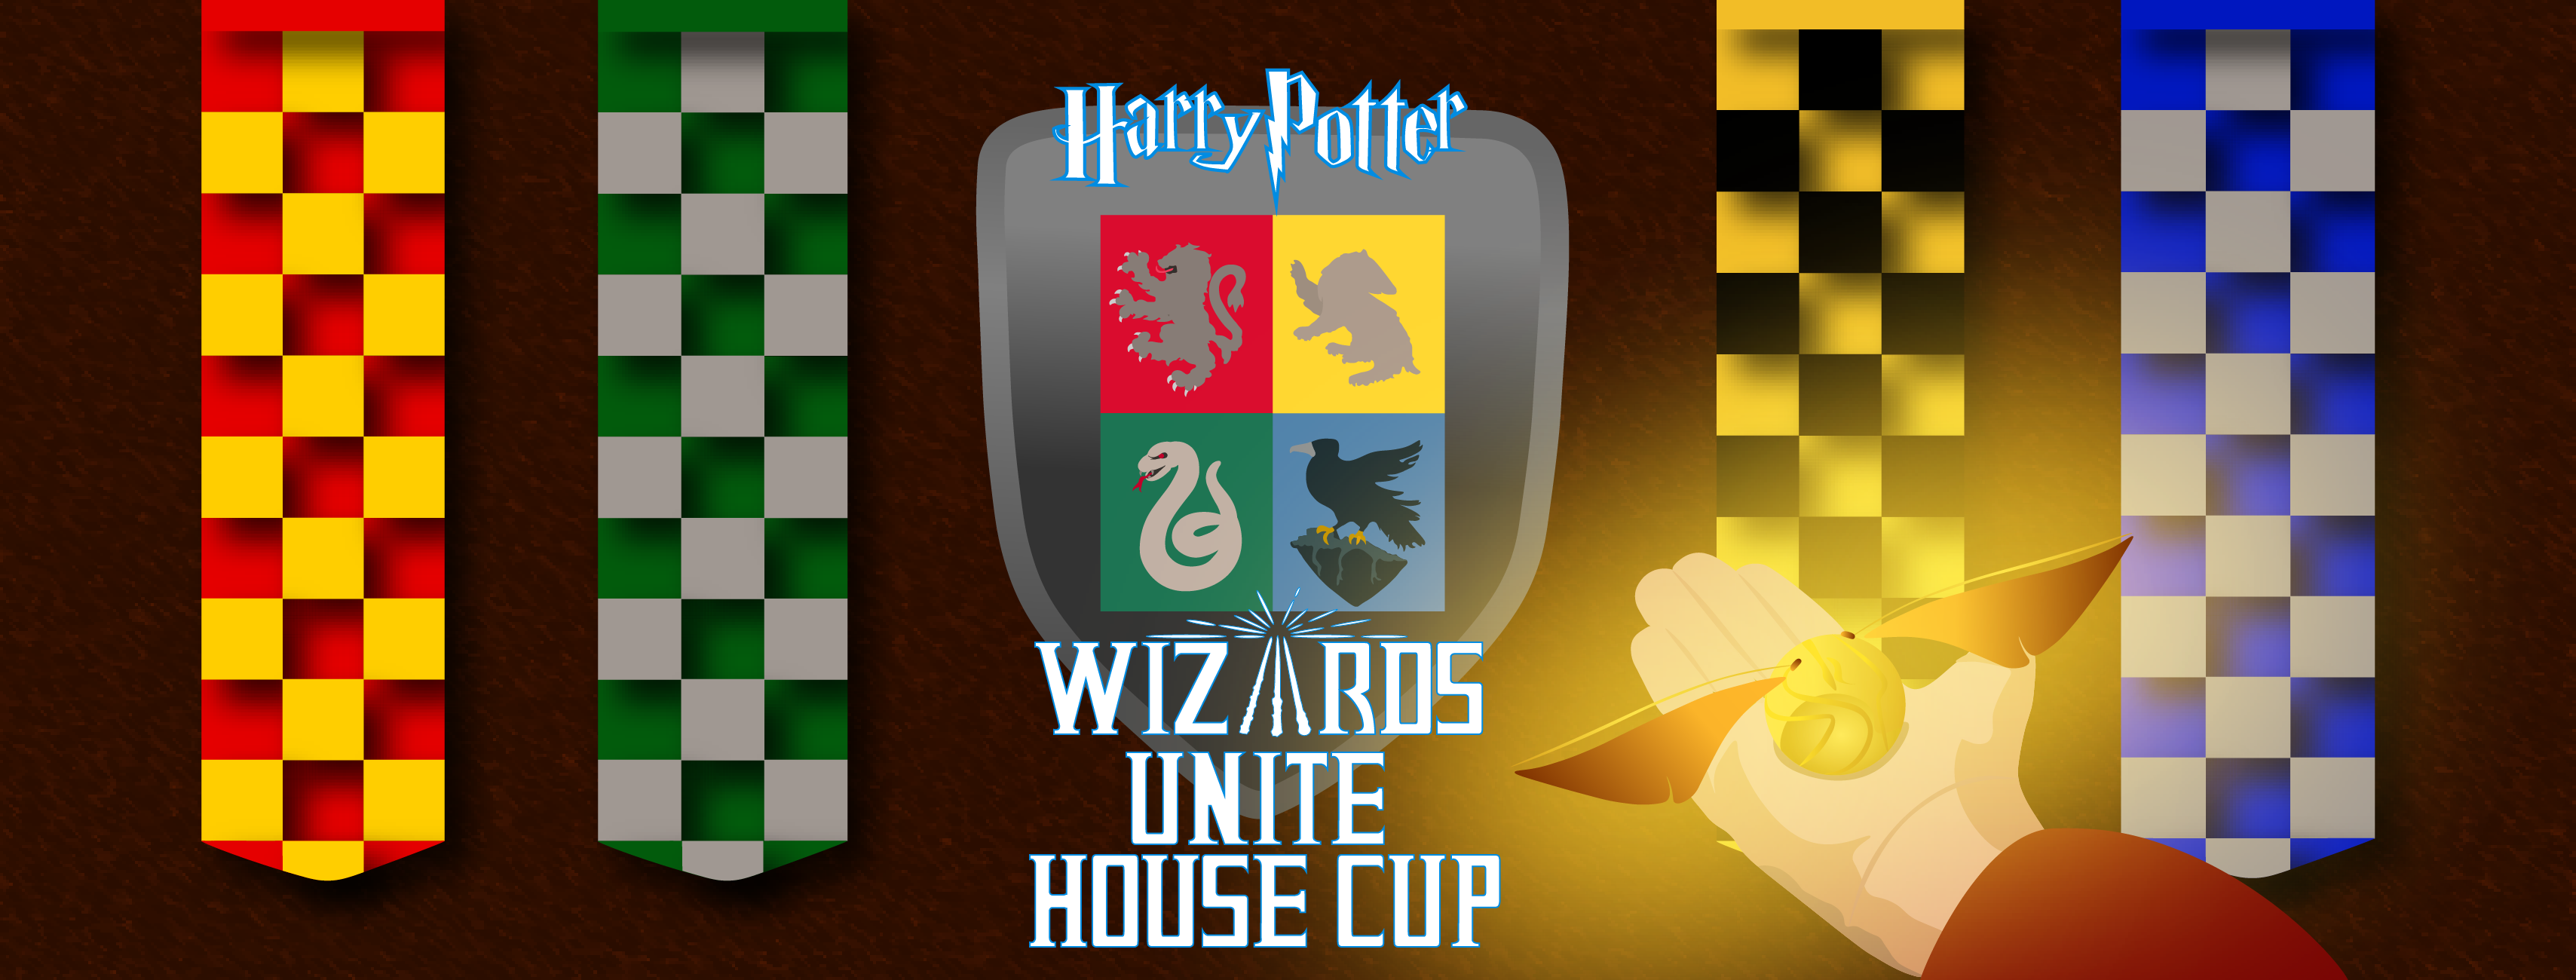 Harry Potter Wizards Unite House Cup